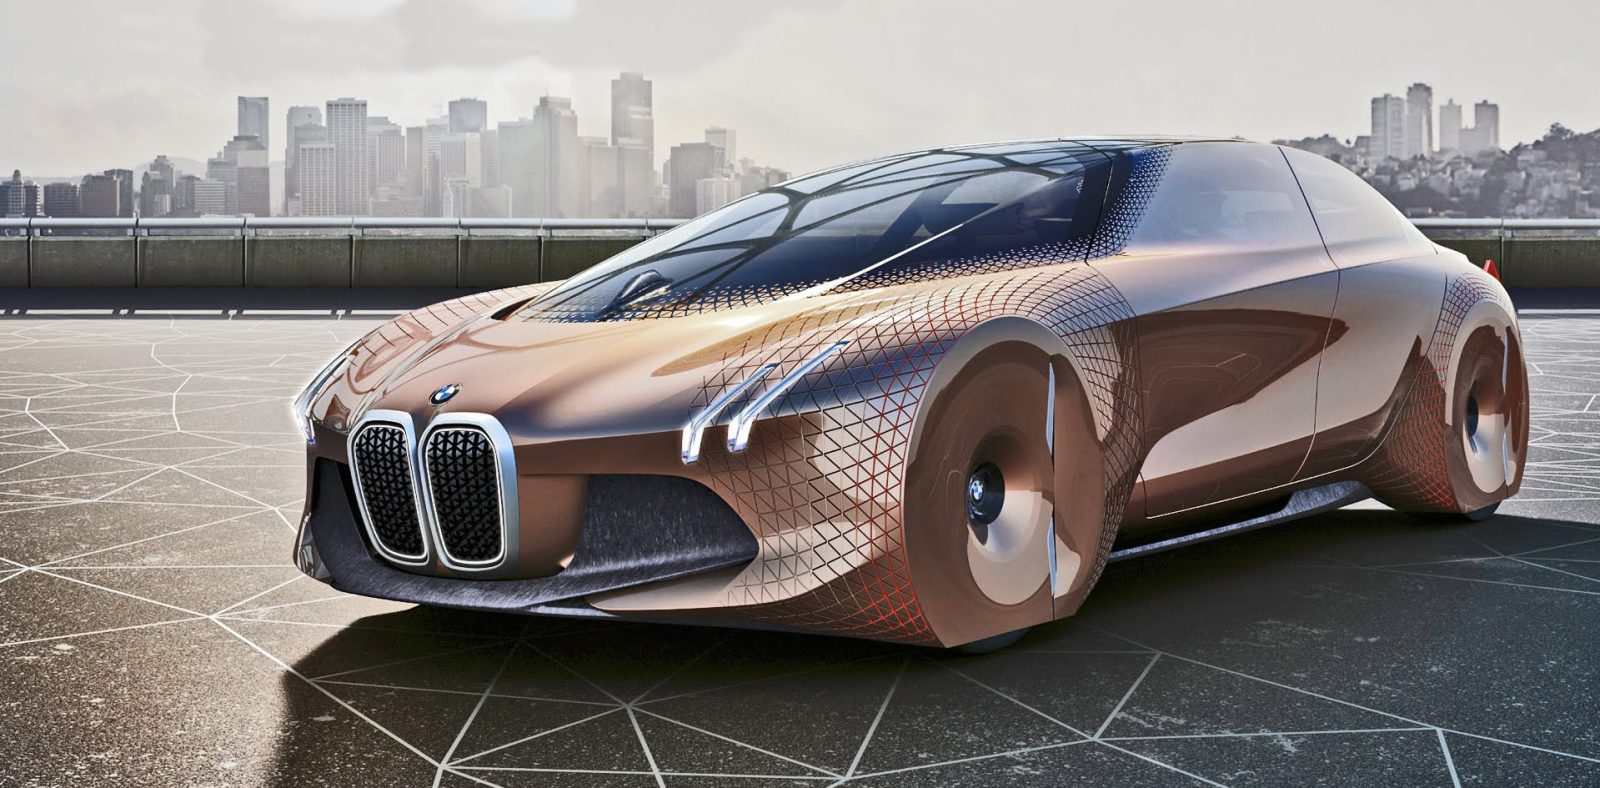 BMW is now working with Intel/Mobileye and Delphi on